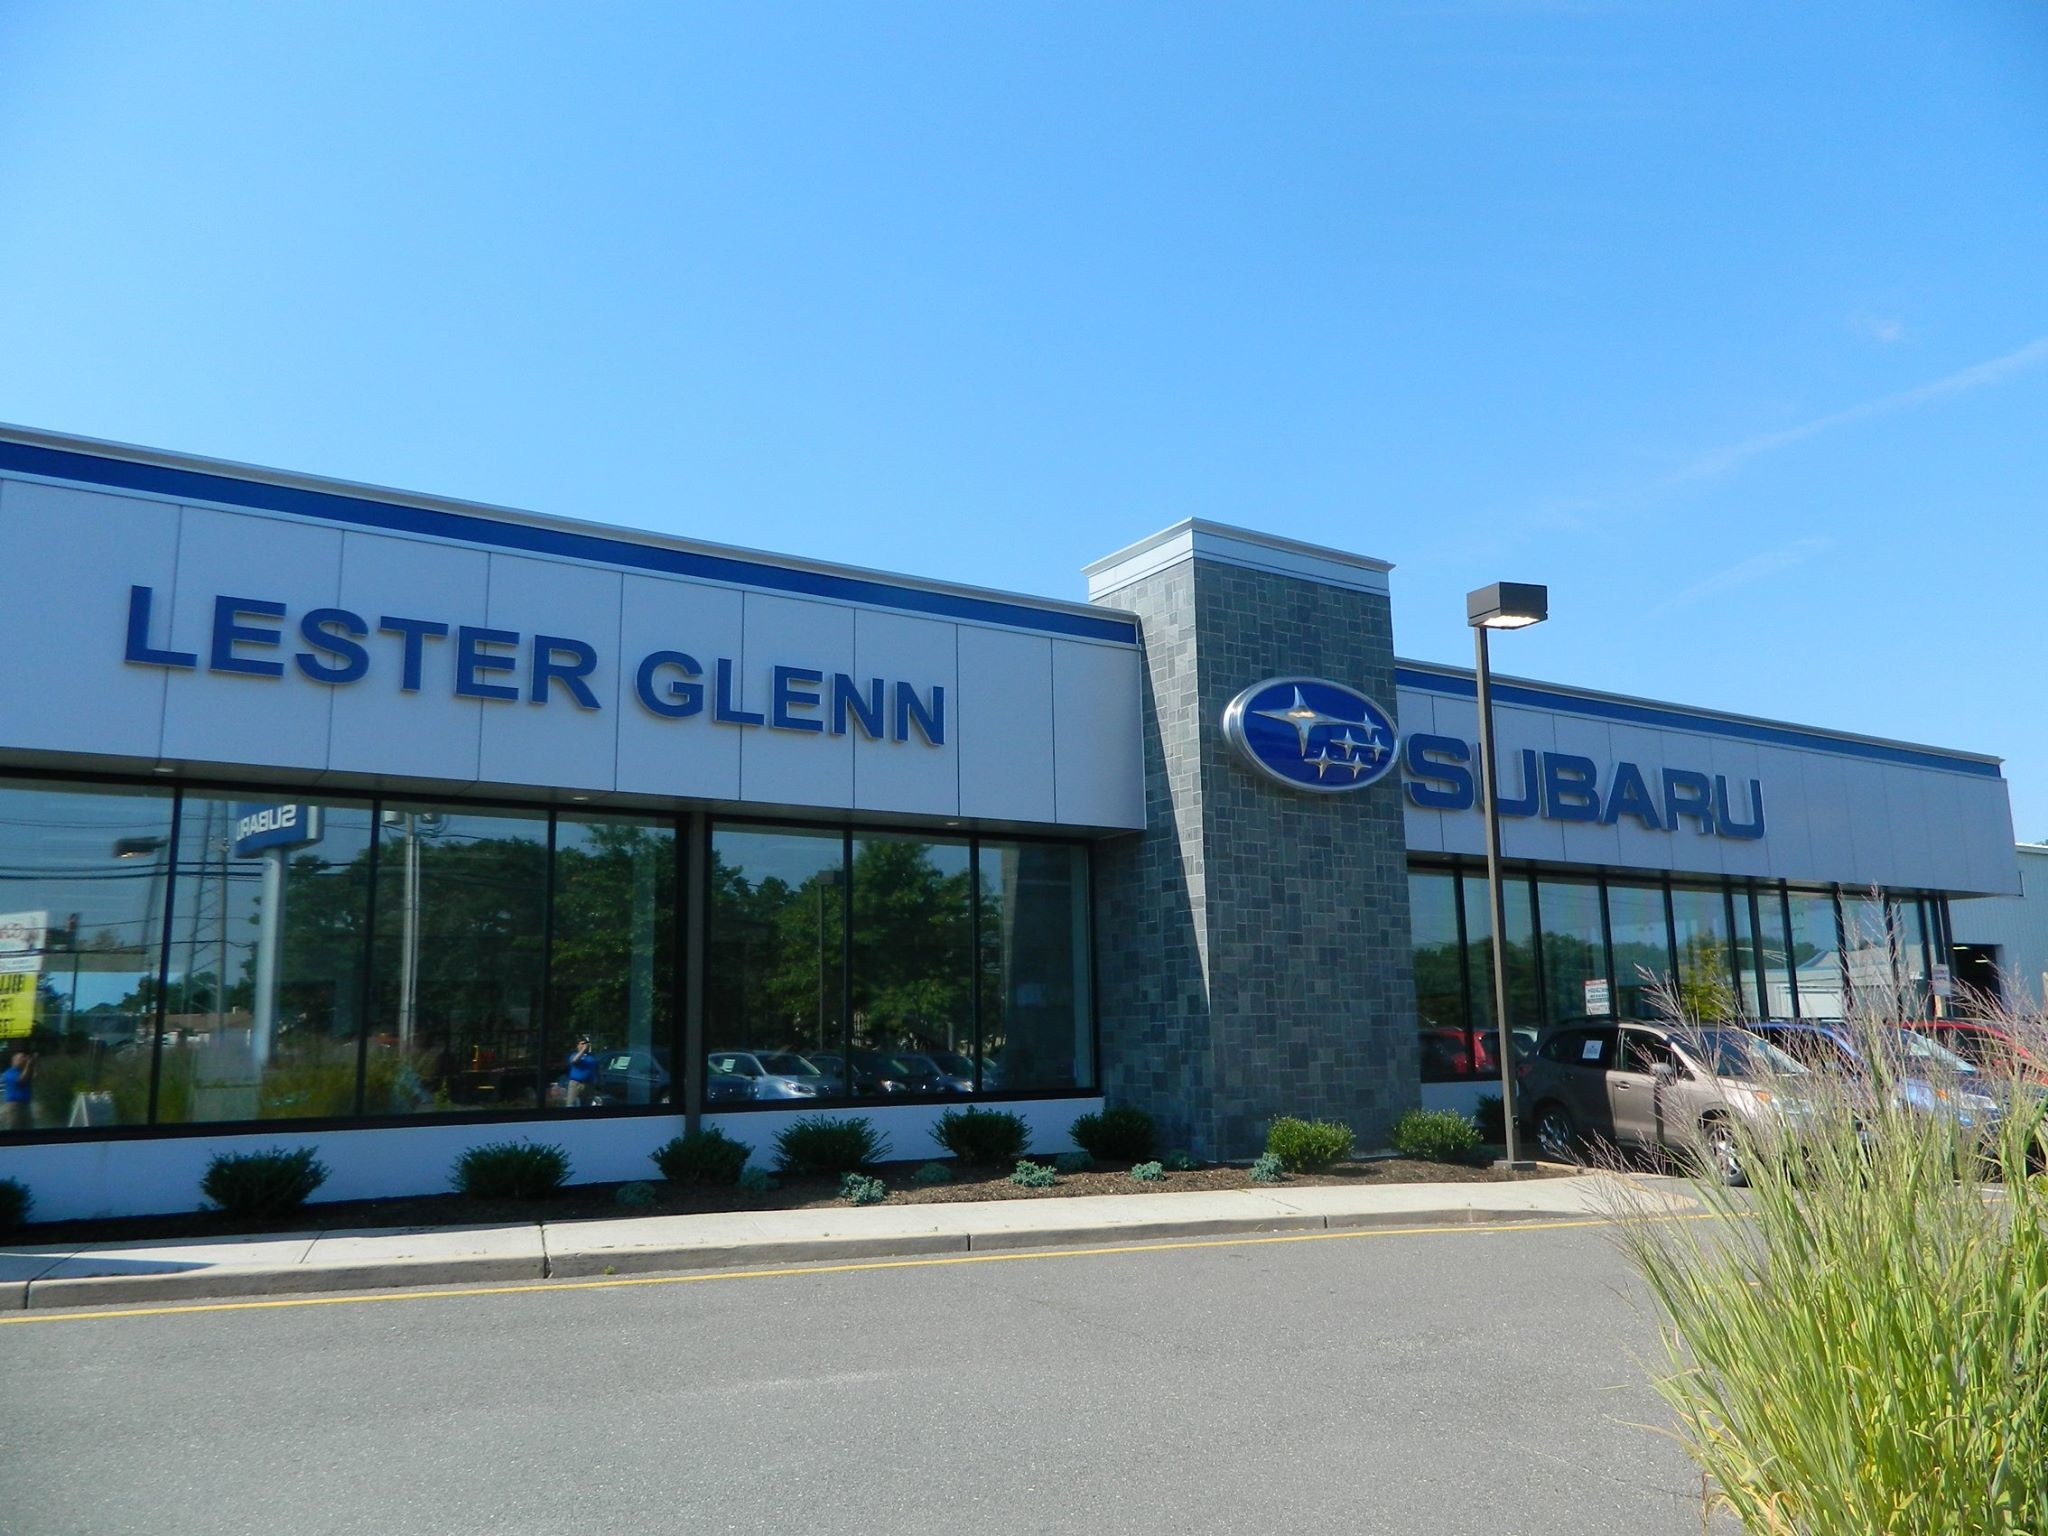 lester glenn subaru at 1501 route 37 w toms river nj on fave. Black Bedroom Furniture Sets. Home Design Ideas